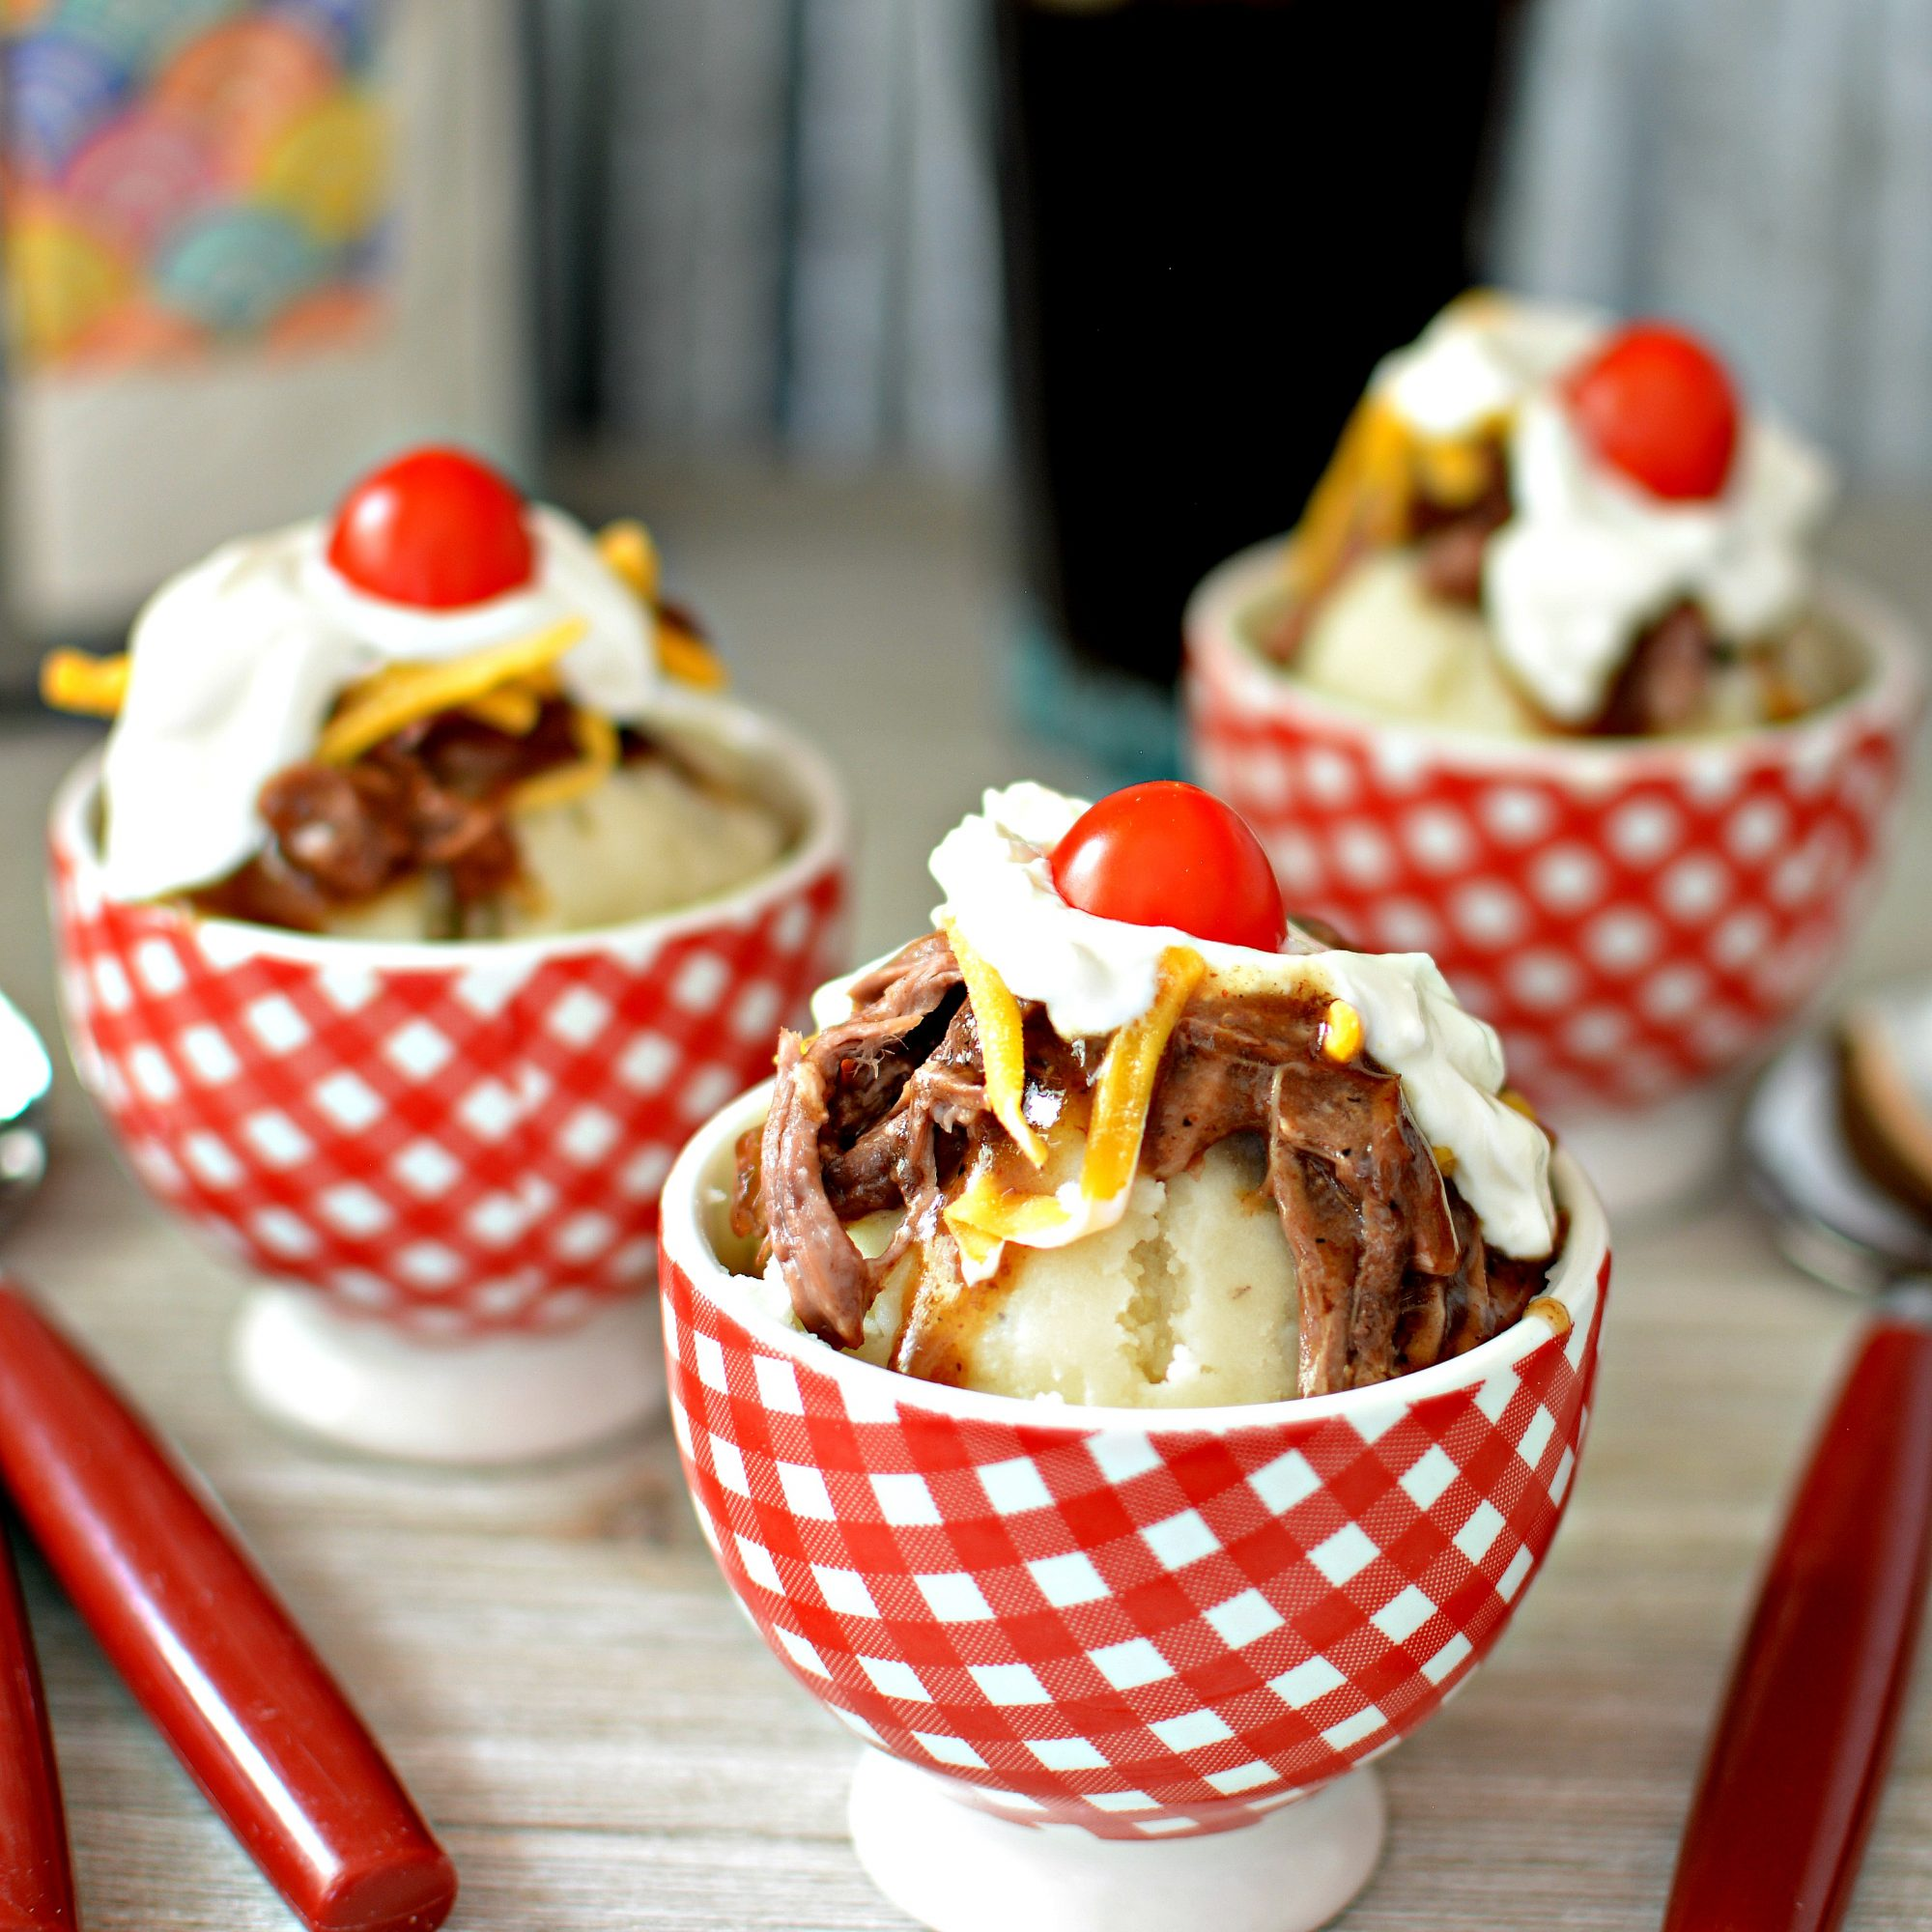 Hot Beef Sundae in red and white ice cream bowls